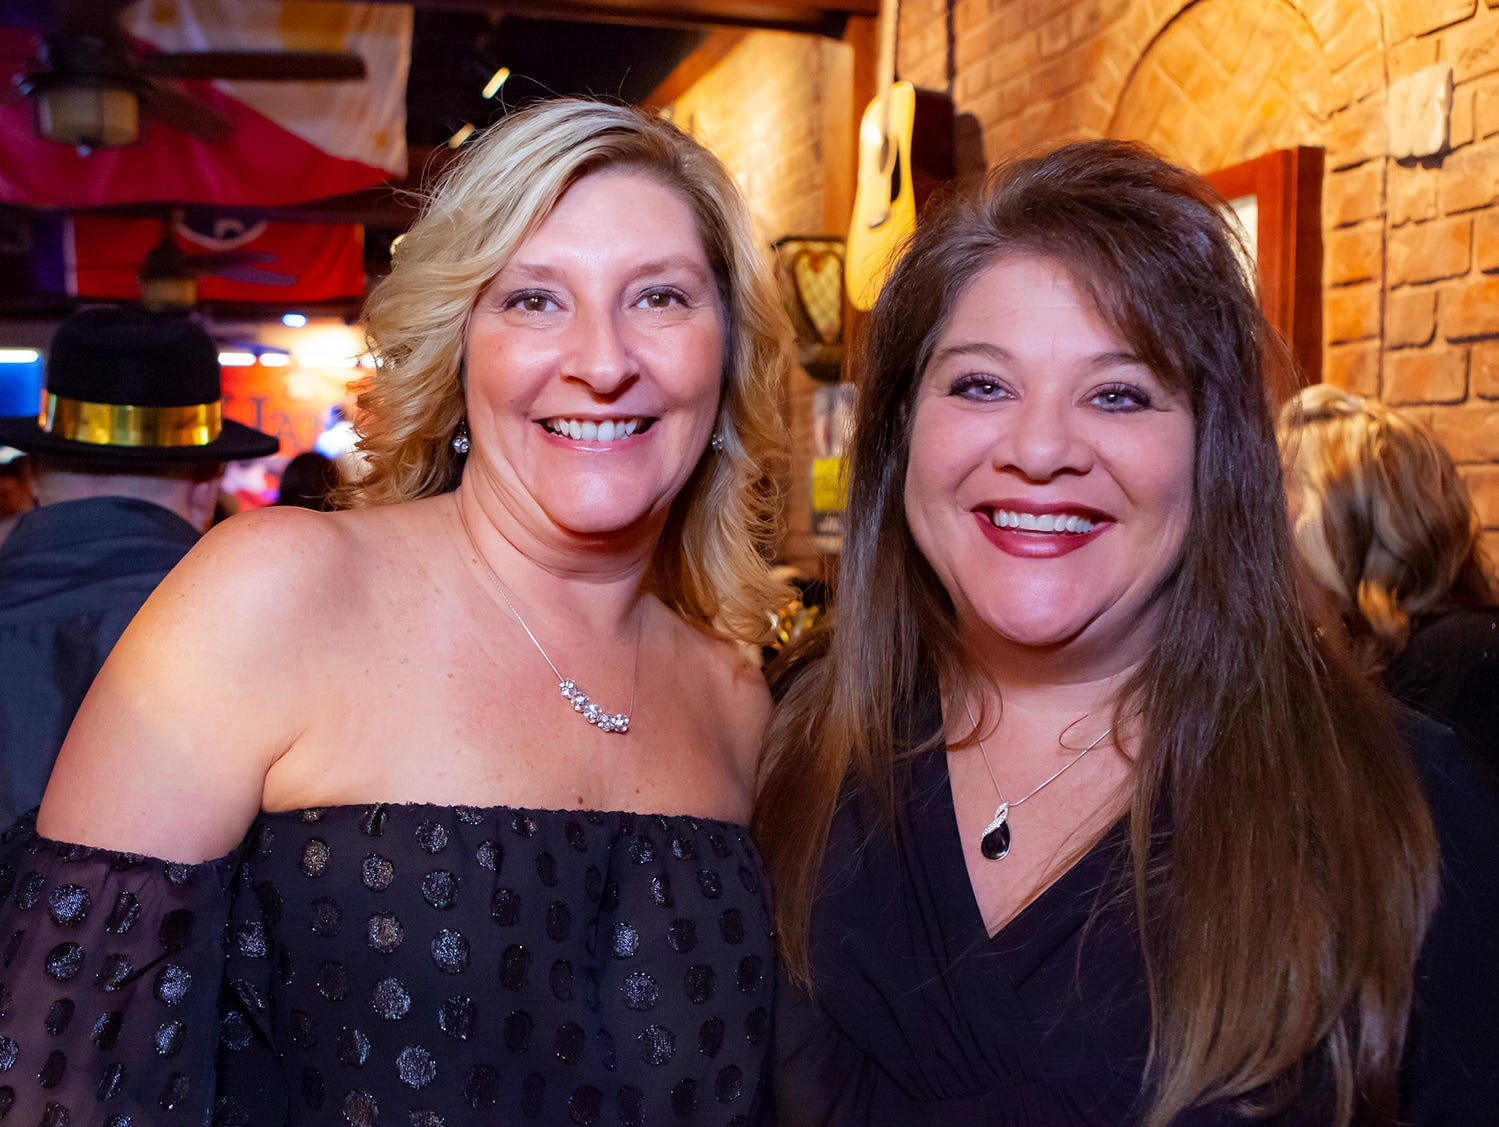 Bonnie Winslow and Marcy McCool at the Hank's Honky Tonk New Year's Eve Party in Murfreesboro.